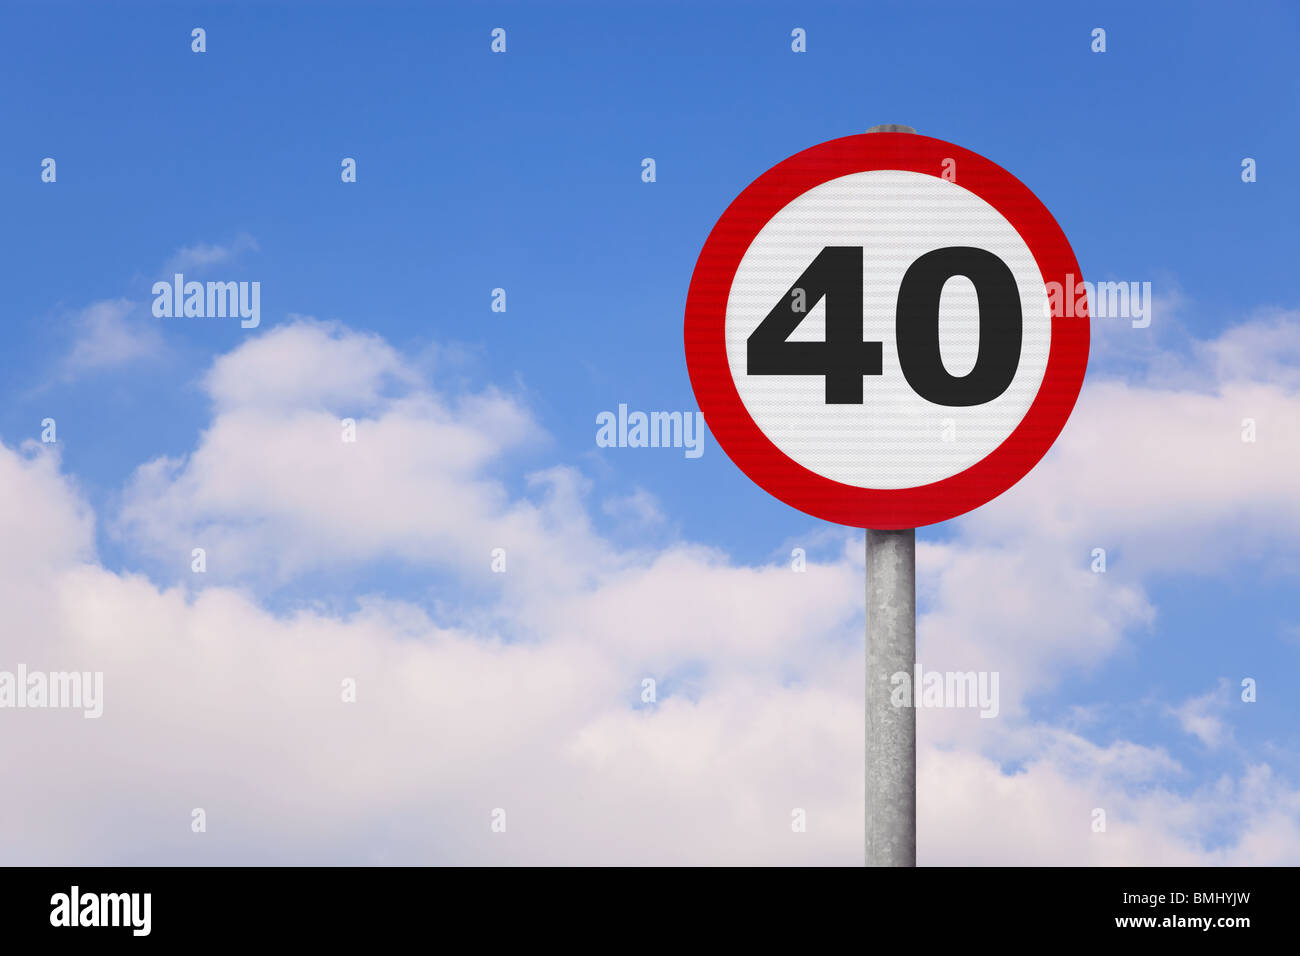 A round roadsign with the number 40 on it against a blue cloudy sky. - Stock Image